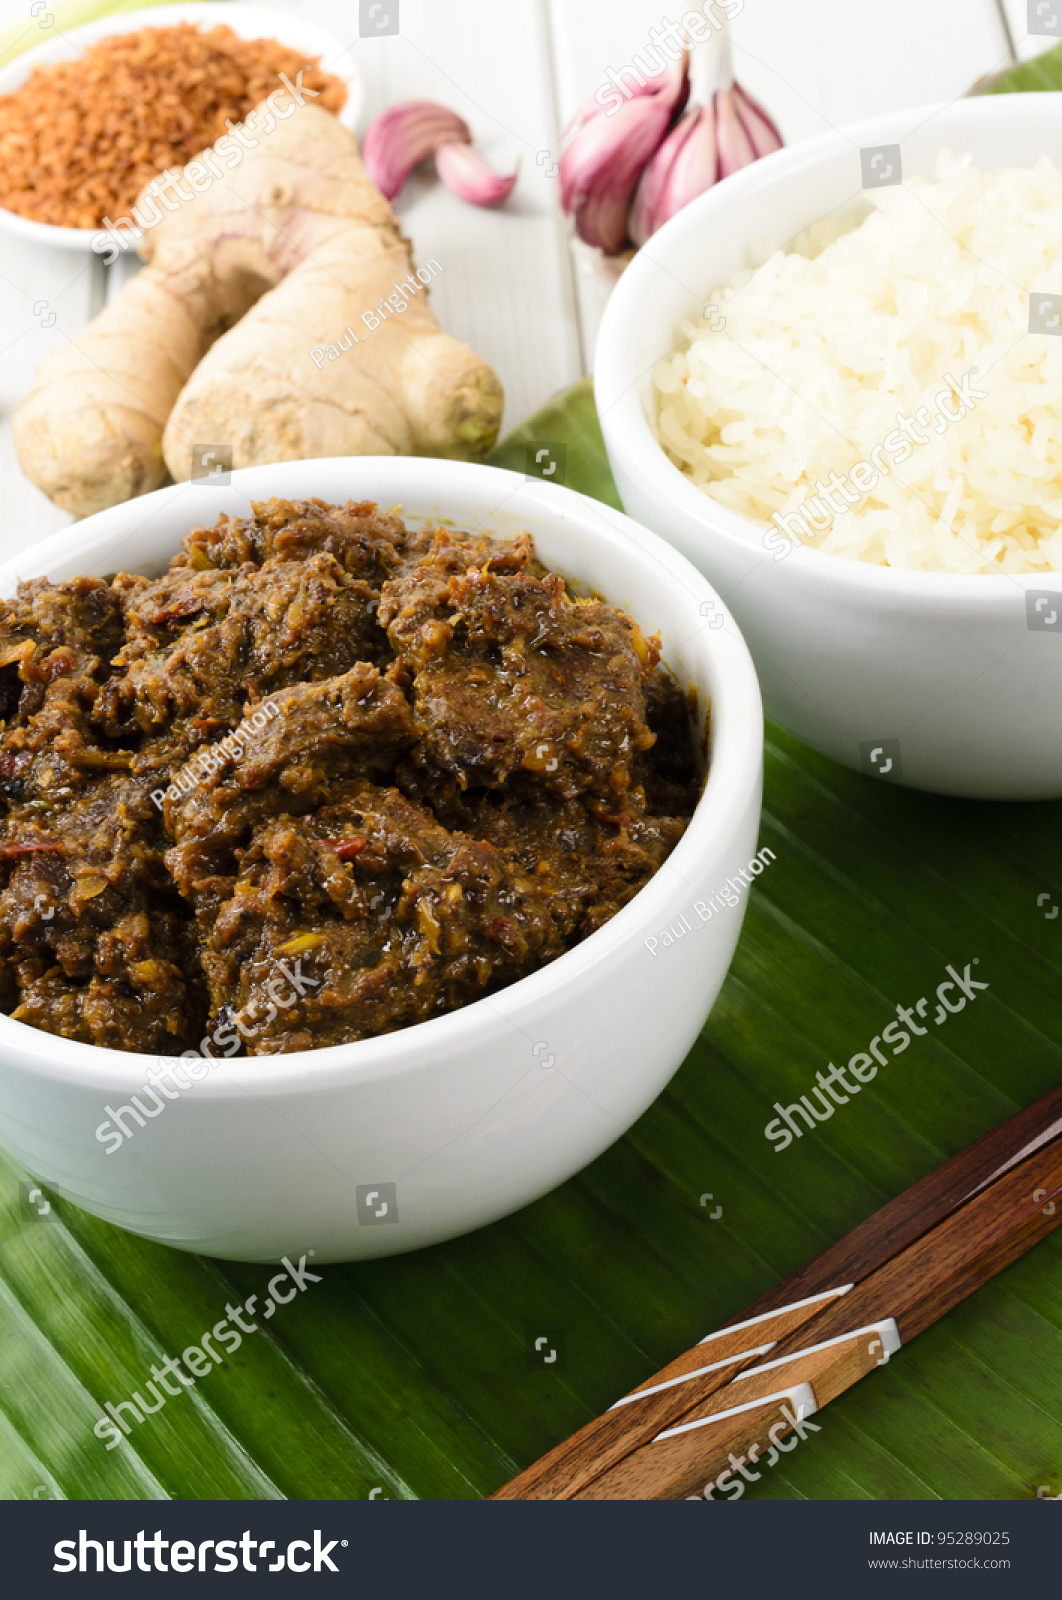 Beef Rendang Sticky Rice Malaysian Indonesian Spicy Dry Beef Stew With Coconut Served